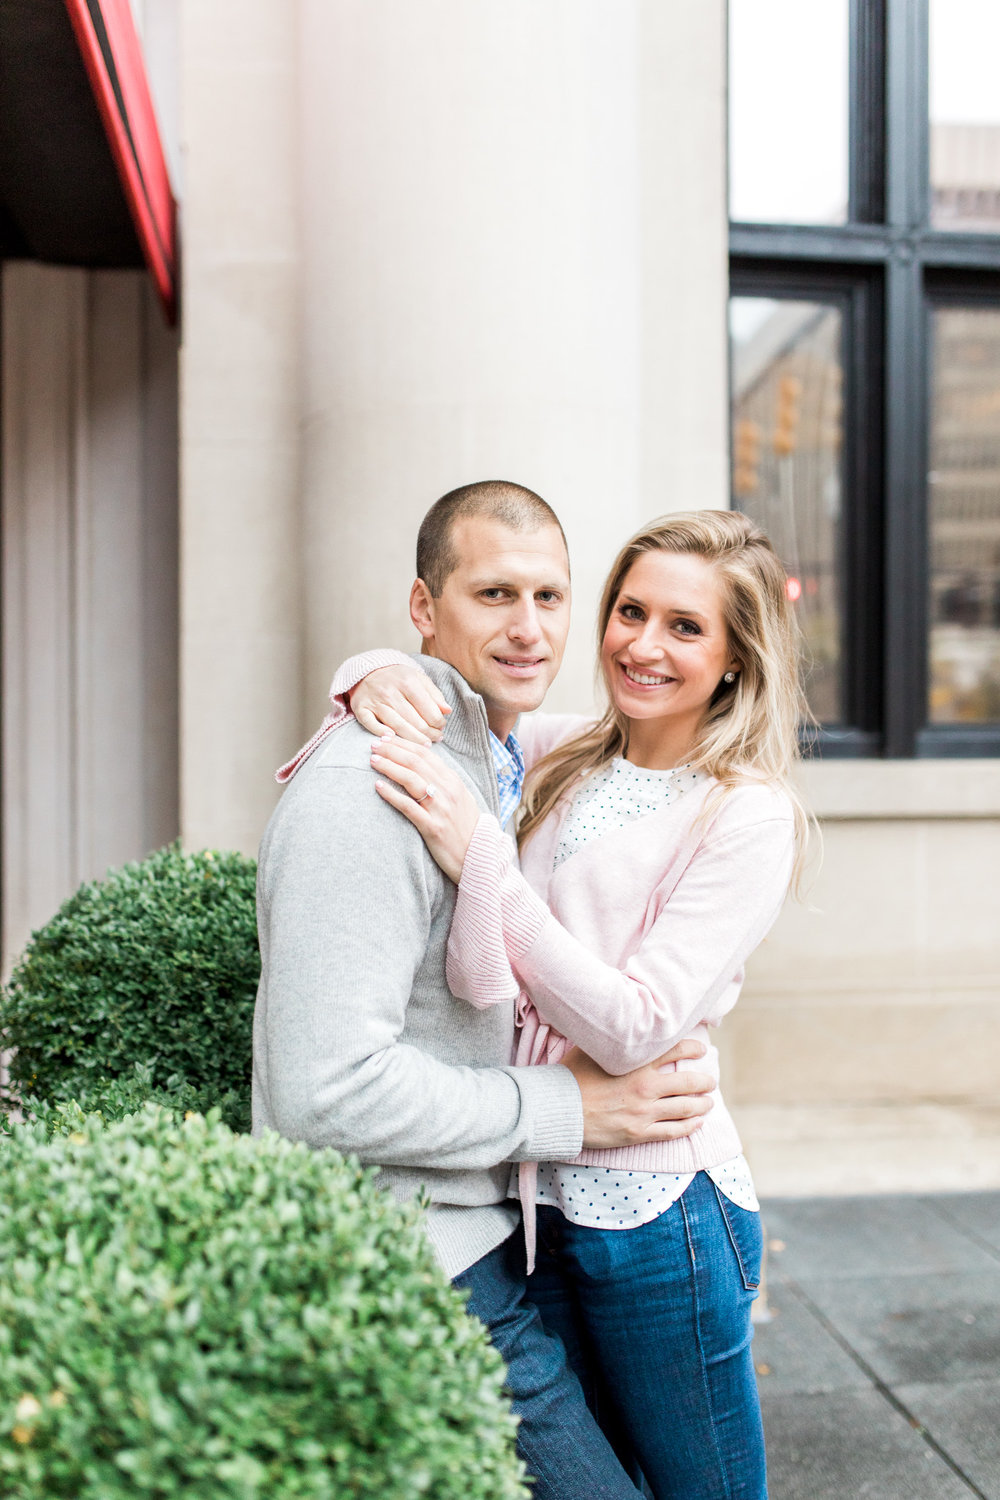 Romantic downtown engagement session | Laurenda Marie Photography | Grand Rapids, Michigan